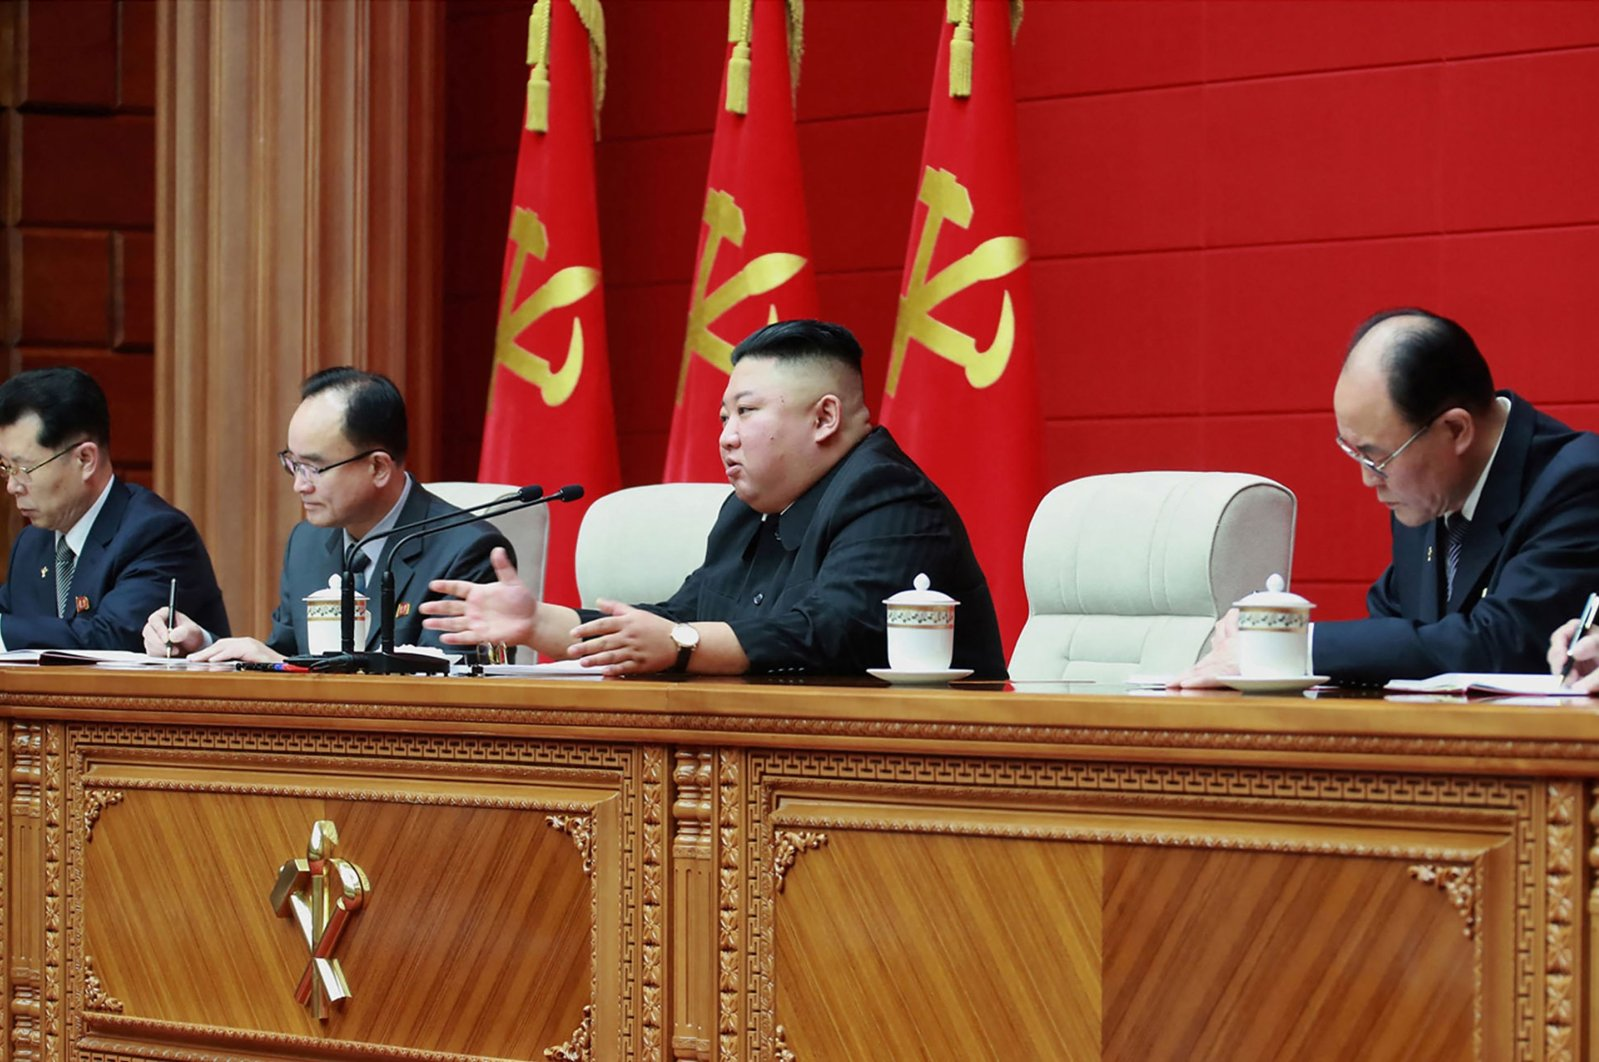 North Korean leader Kim Jong Un (2nd R) speaks during the second day sitting of the first short course for chief secretaries of city and county party committees in Pyongyang, March 4, 2021. (KCNA Photo via KNS/AFP)